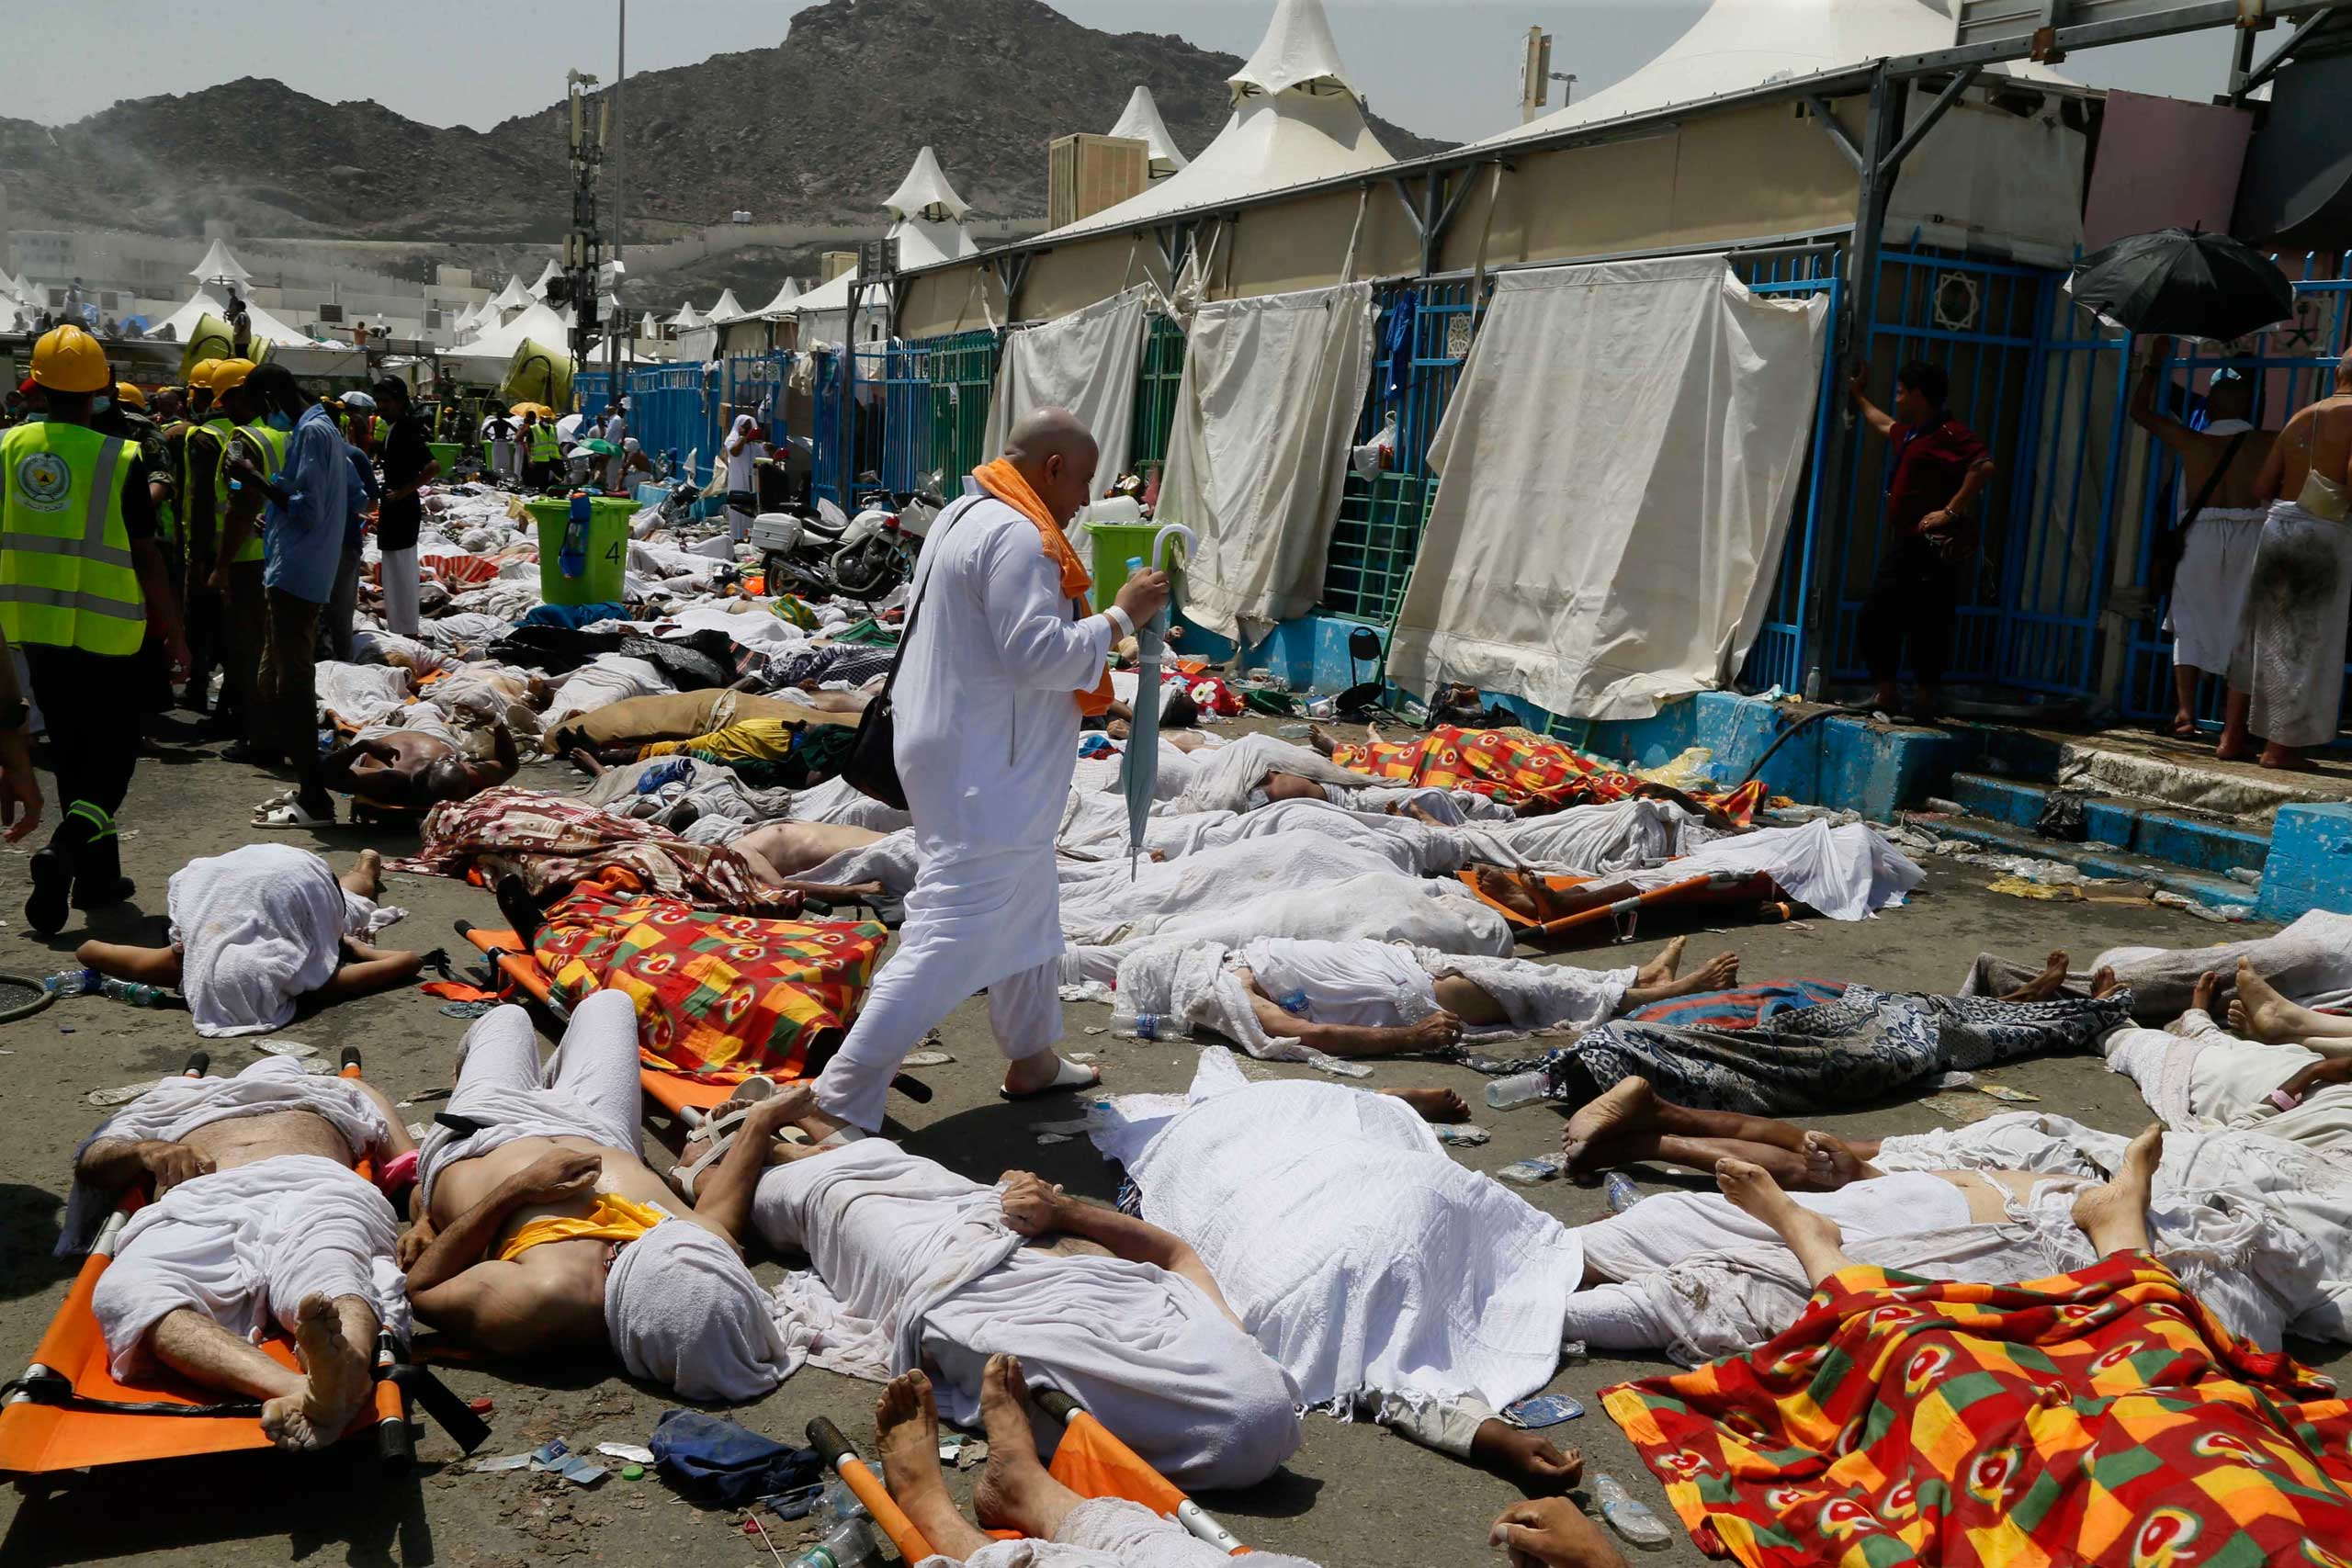 A muslim pilgrim walks through the site where the victims of a stampede are gathered in Mina, Saudi Arabia during the annual hajj pilgrimage on Sept. 24, 2015.